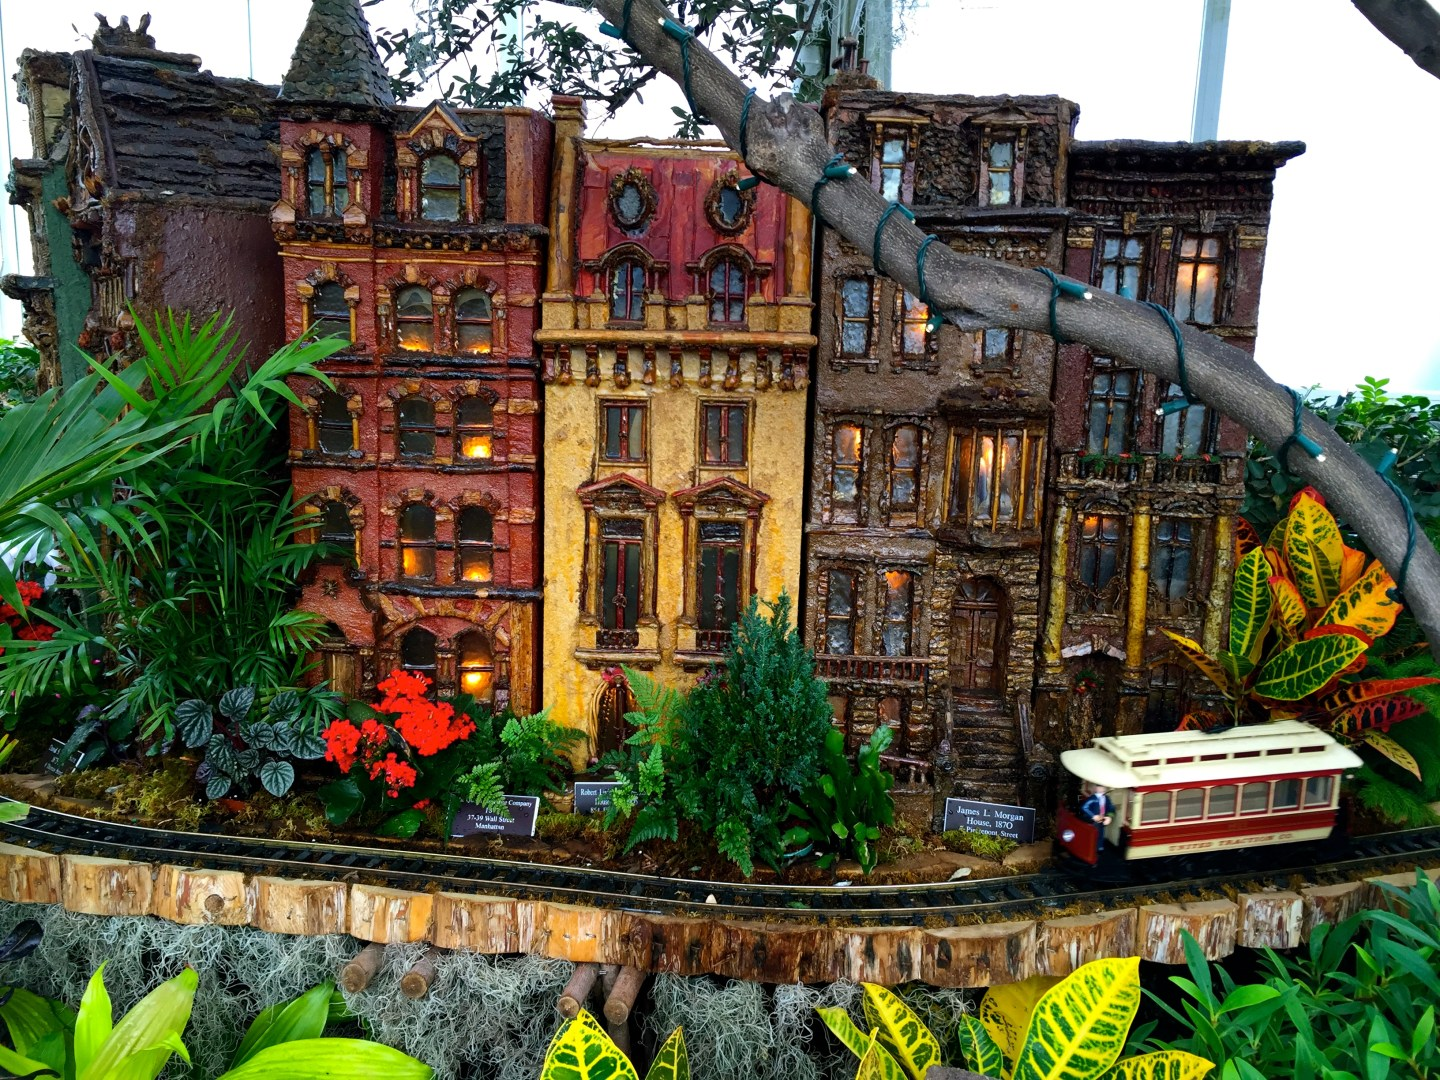 Brownstone Brooklyn at the Holiday Train Show at the New York Botanical Garden